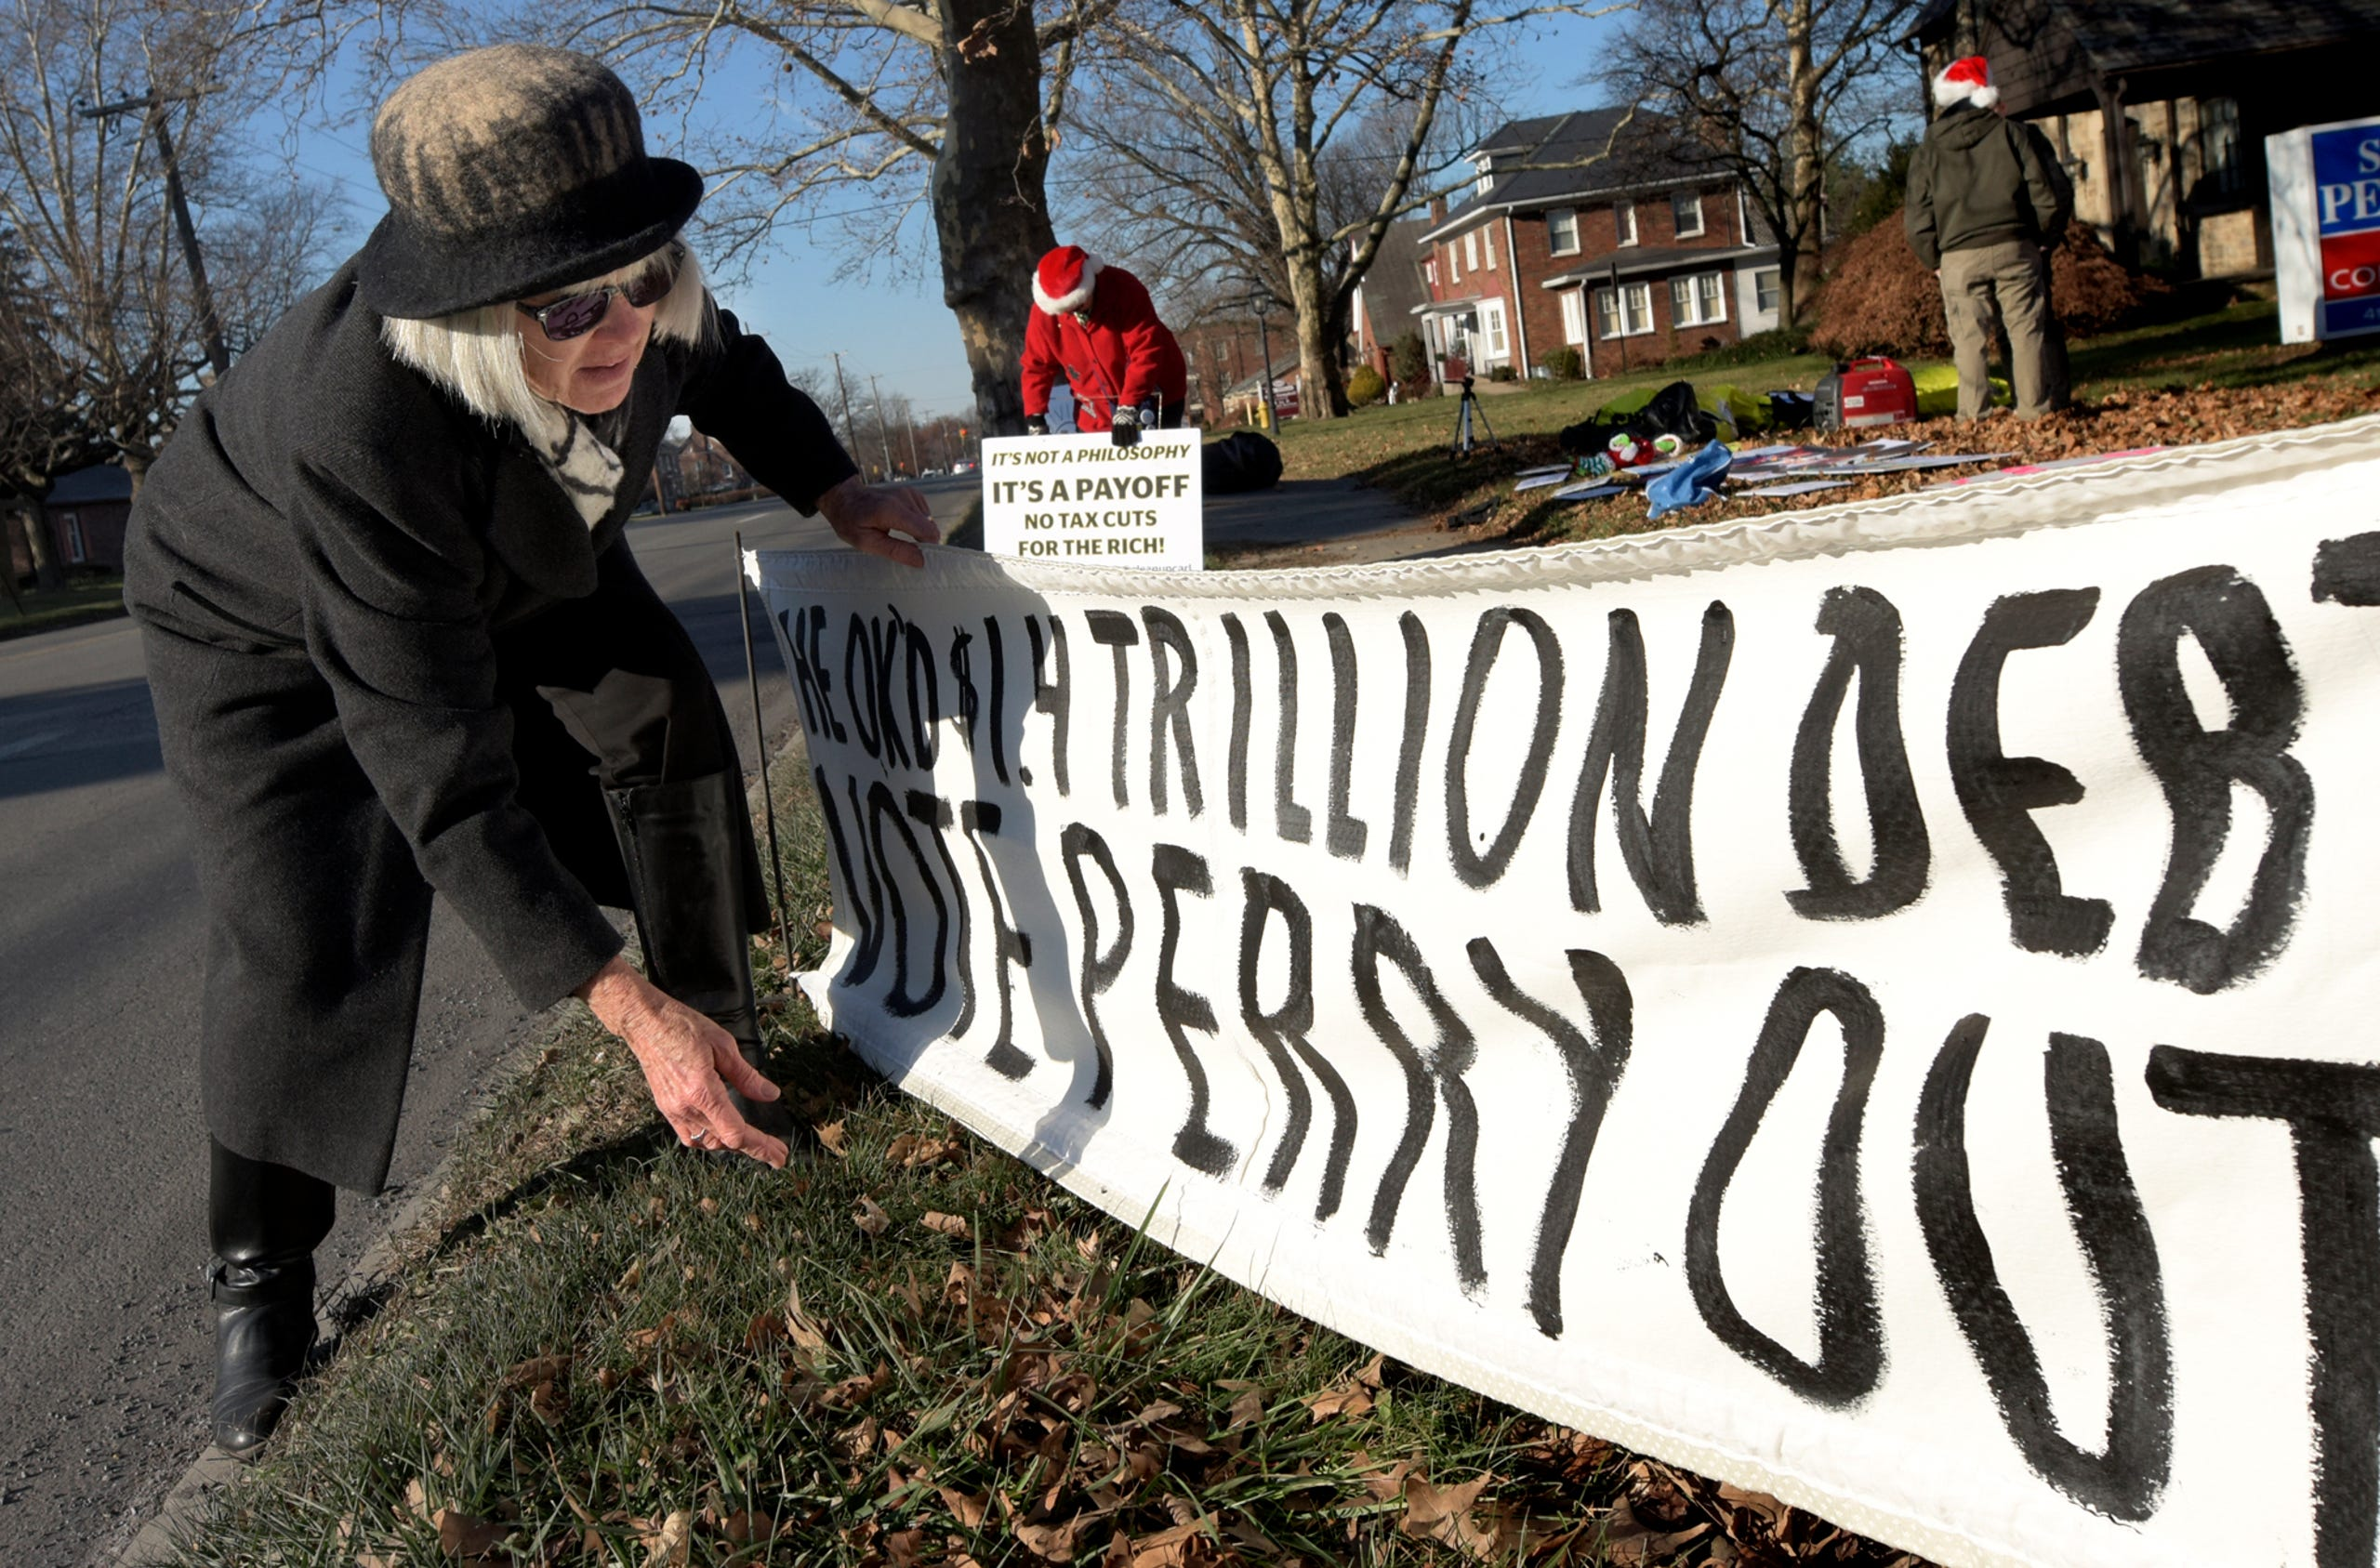 Indivisible York members Mary Barnes of Springfield Township straightens a banner while Nikki Byer of Newberry Township plants a sign, background, while preparing for a